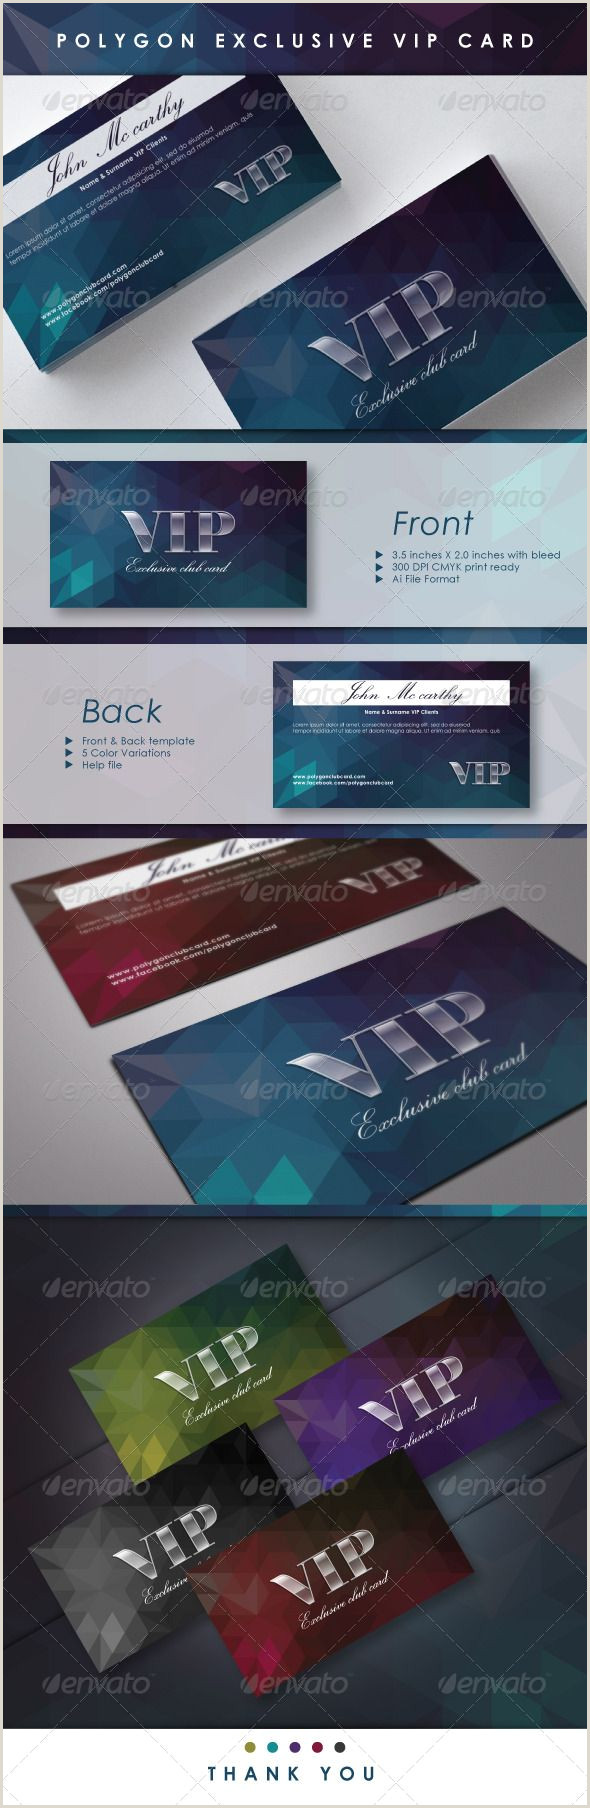 Best Business Cards Offer  Credit Polygon Exclusive Vip Card